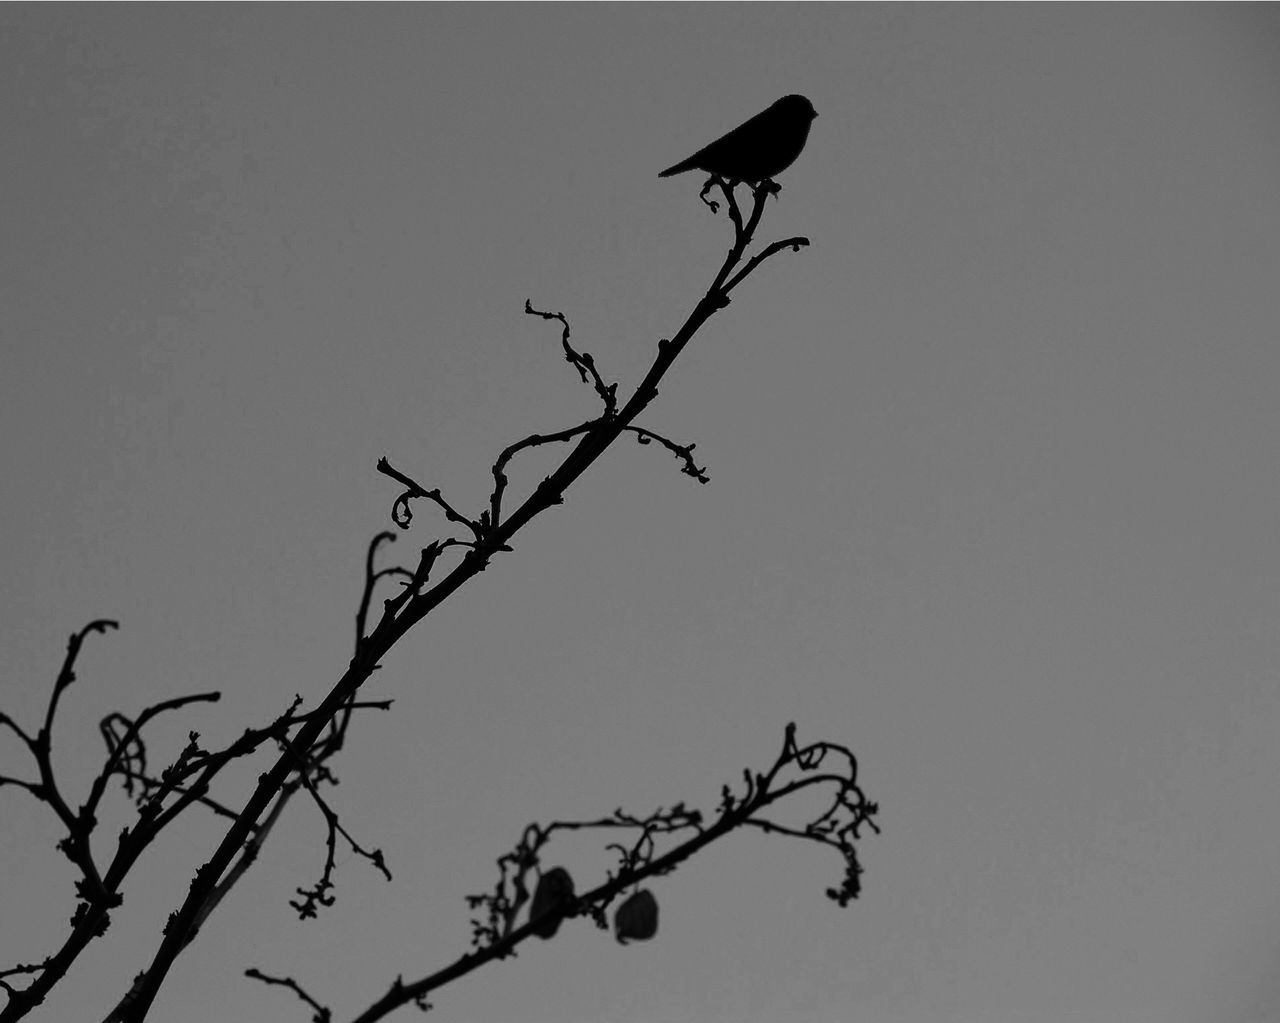 Bird Bird Photography Blackandwhite Black And White Nikon EyeEm Best Shots EyeEmBestPics First Eyeem Photo Followme Sunday Check This Out Showing Imperfection Bestoftheday Taking Photos India Chennai